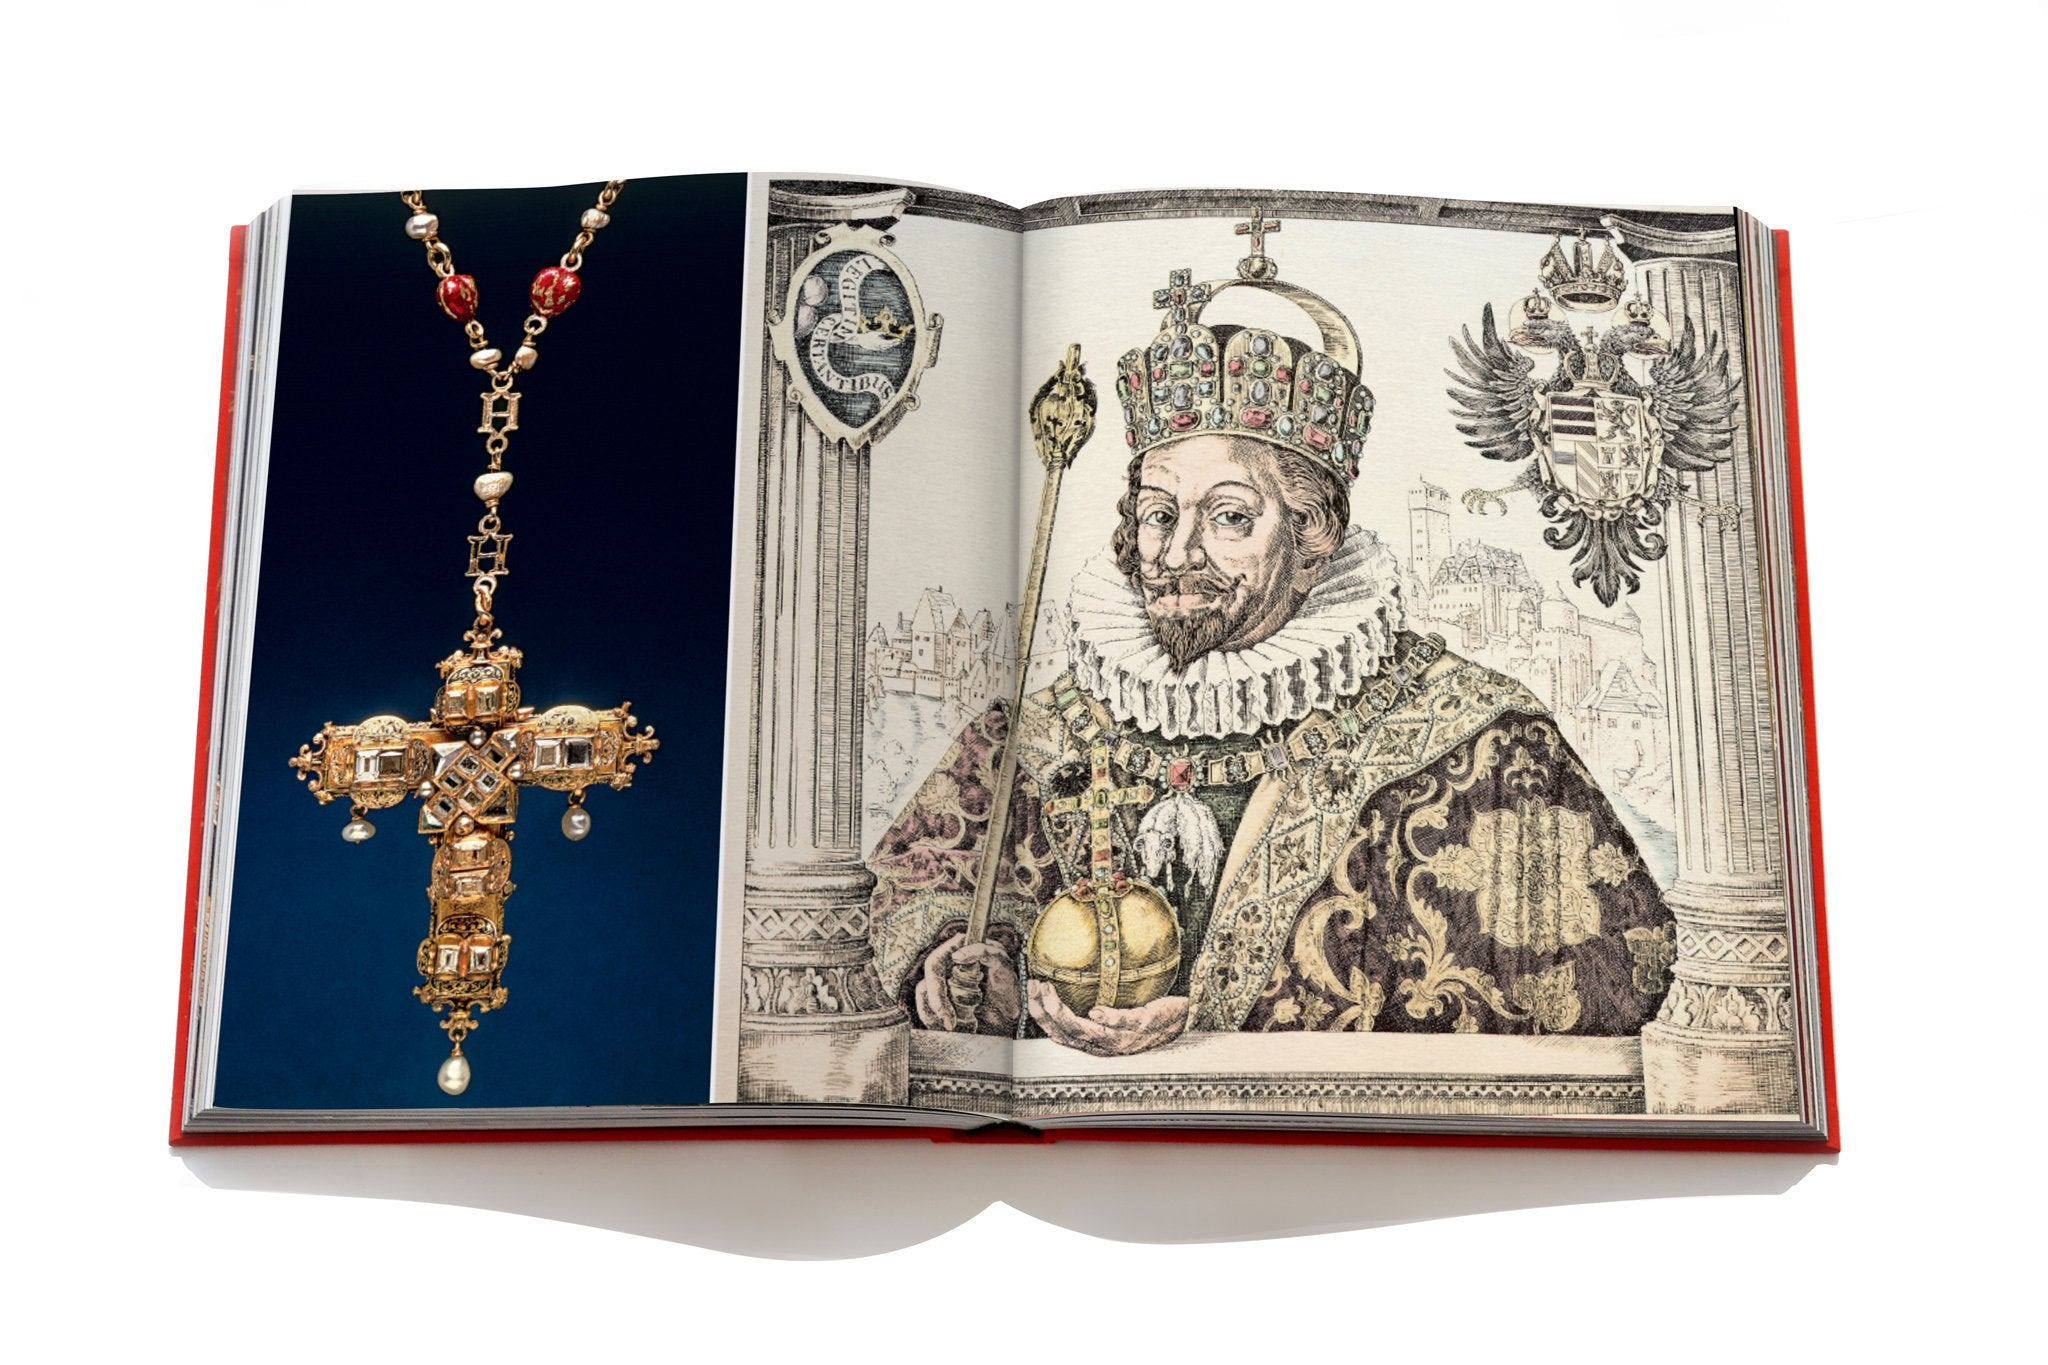 Assouline Books Jewels of the Renaissance